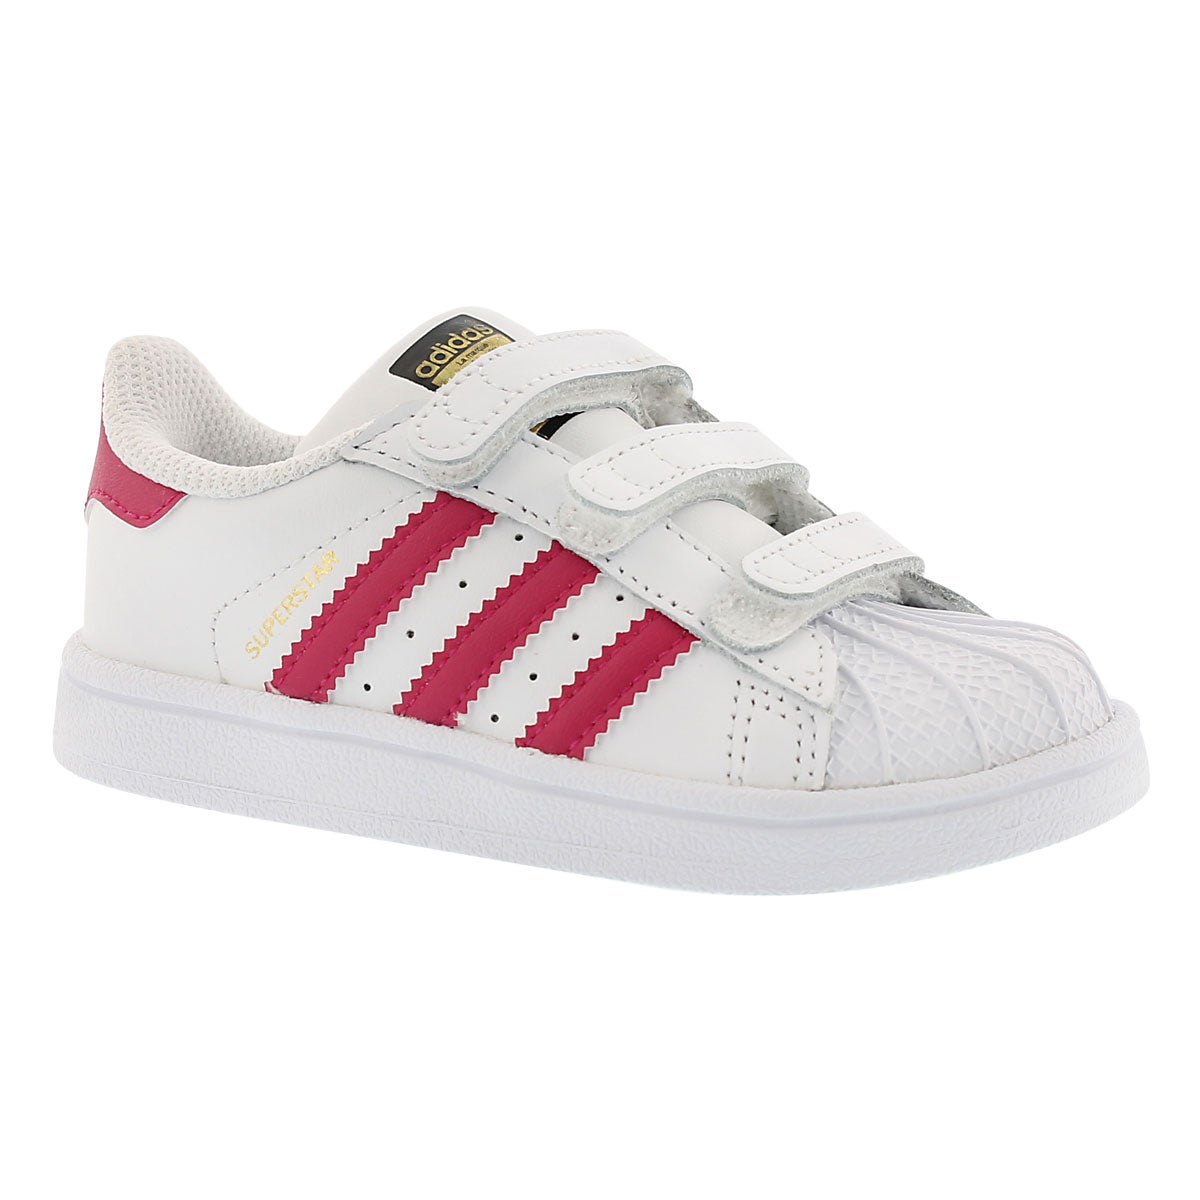 Infants' SUPERSTAR FOUNDATION wht/pnk sneakers